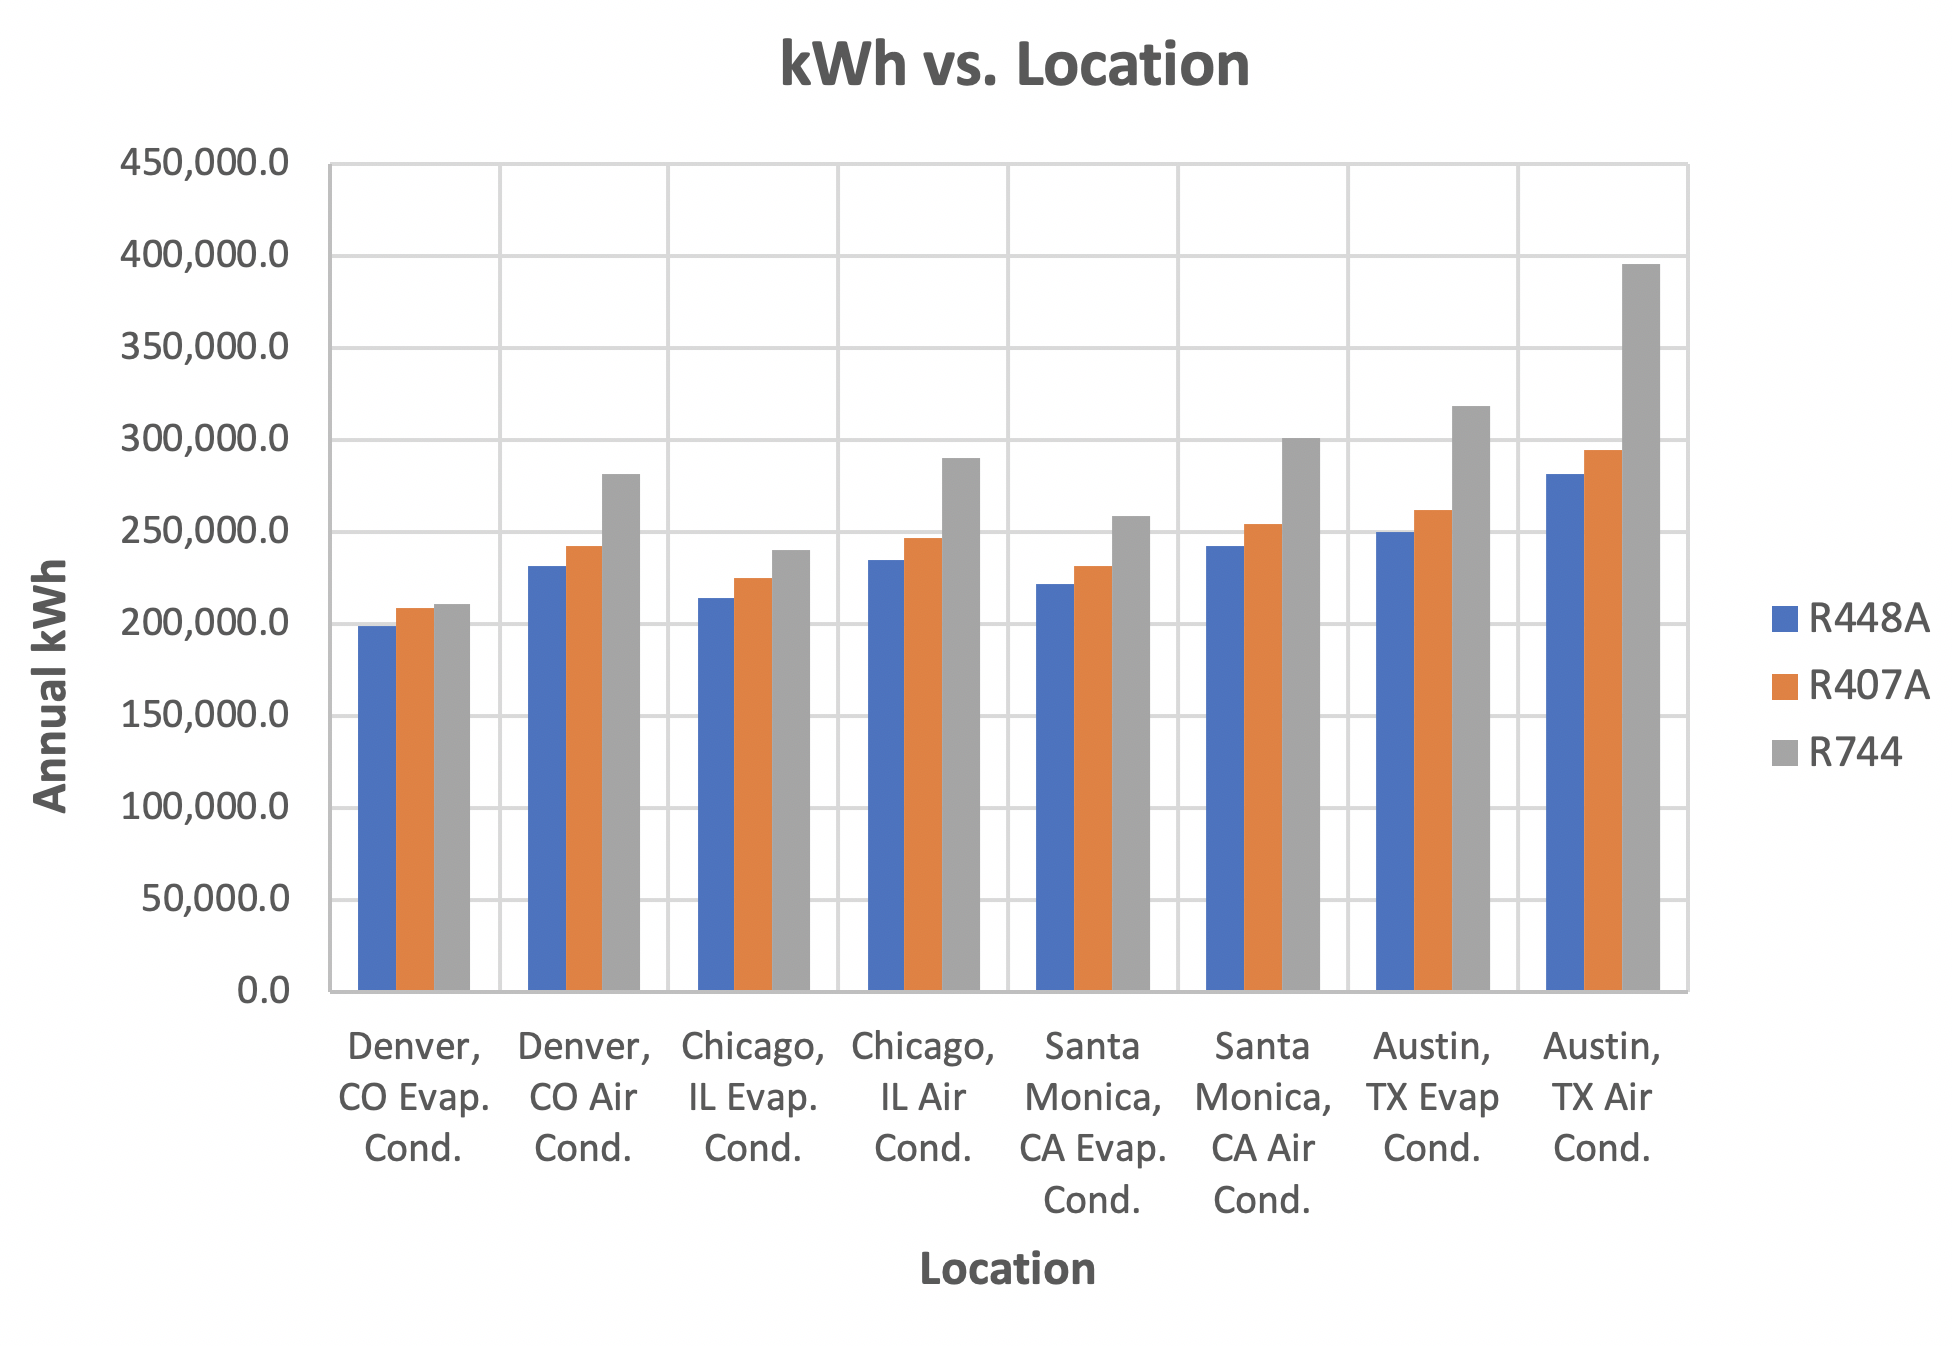 kWh vs location for various refrigerants